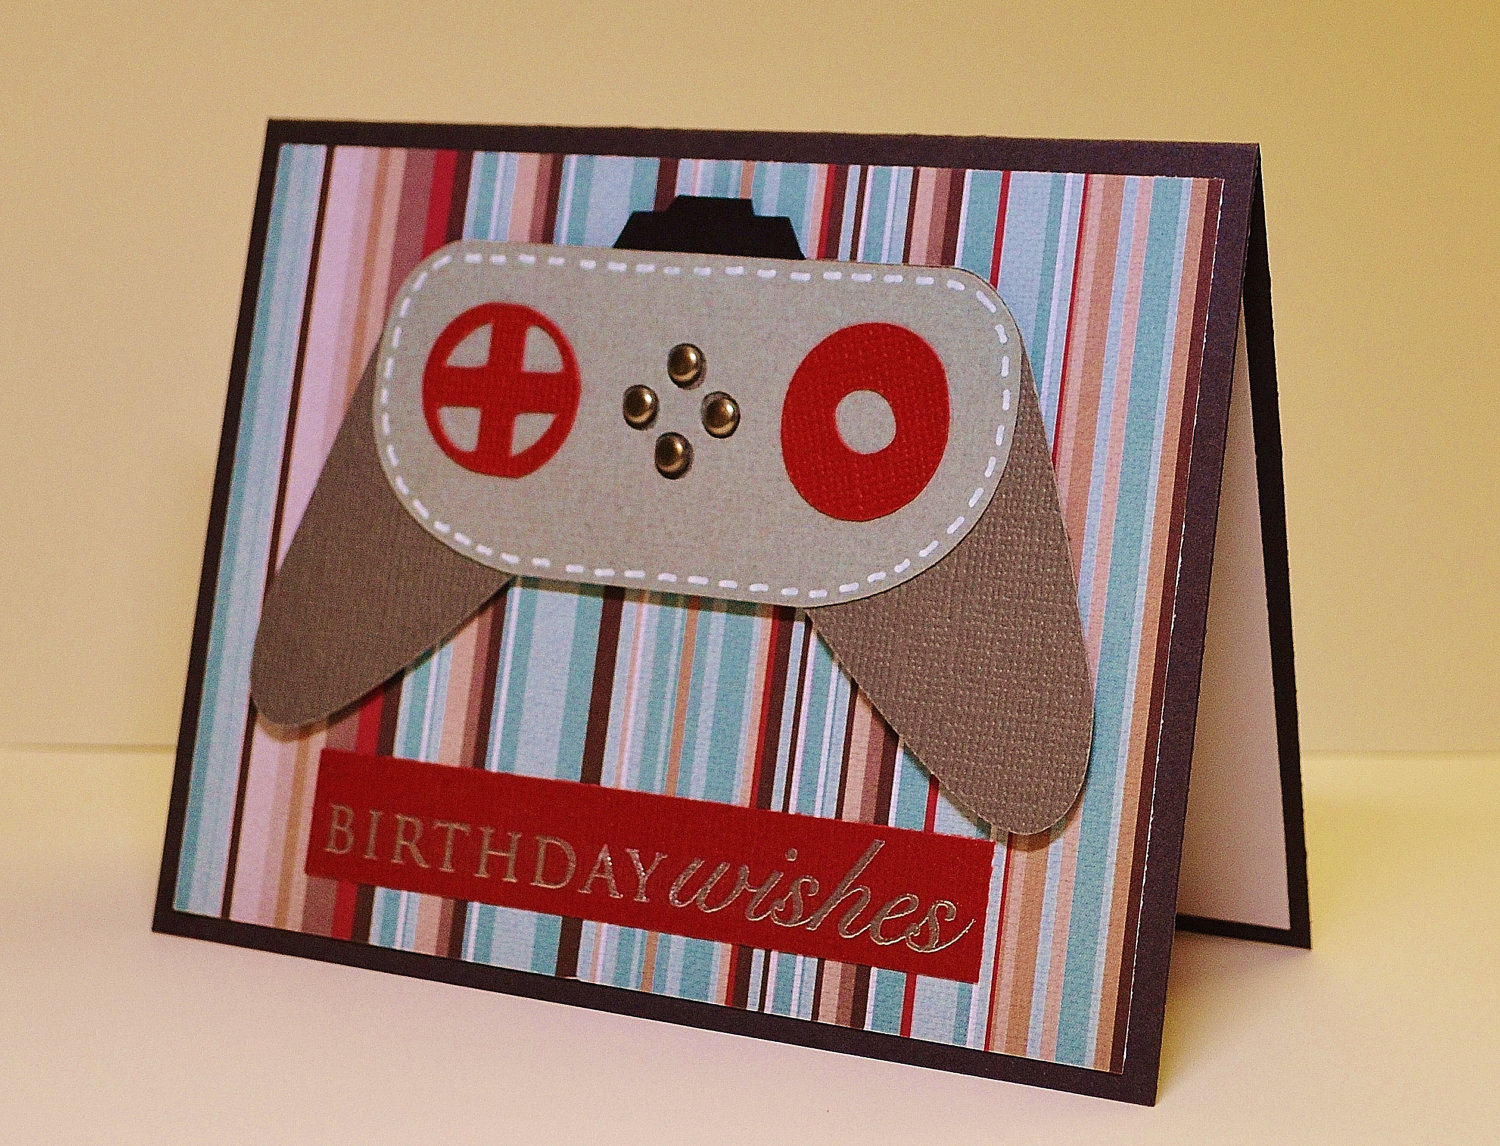 birthday card design for brother ; handmade-birthday-wishes-cards-for-brother-with-steps-8